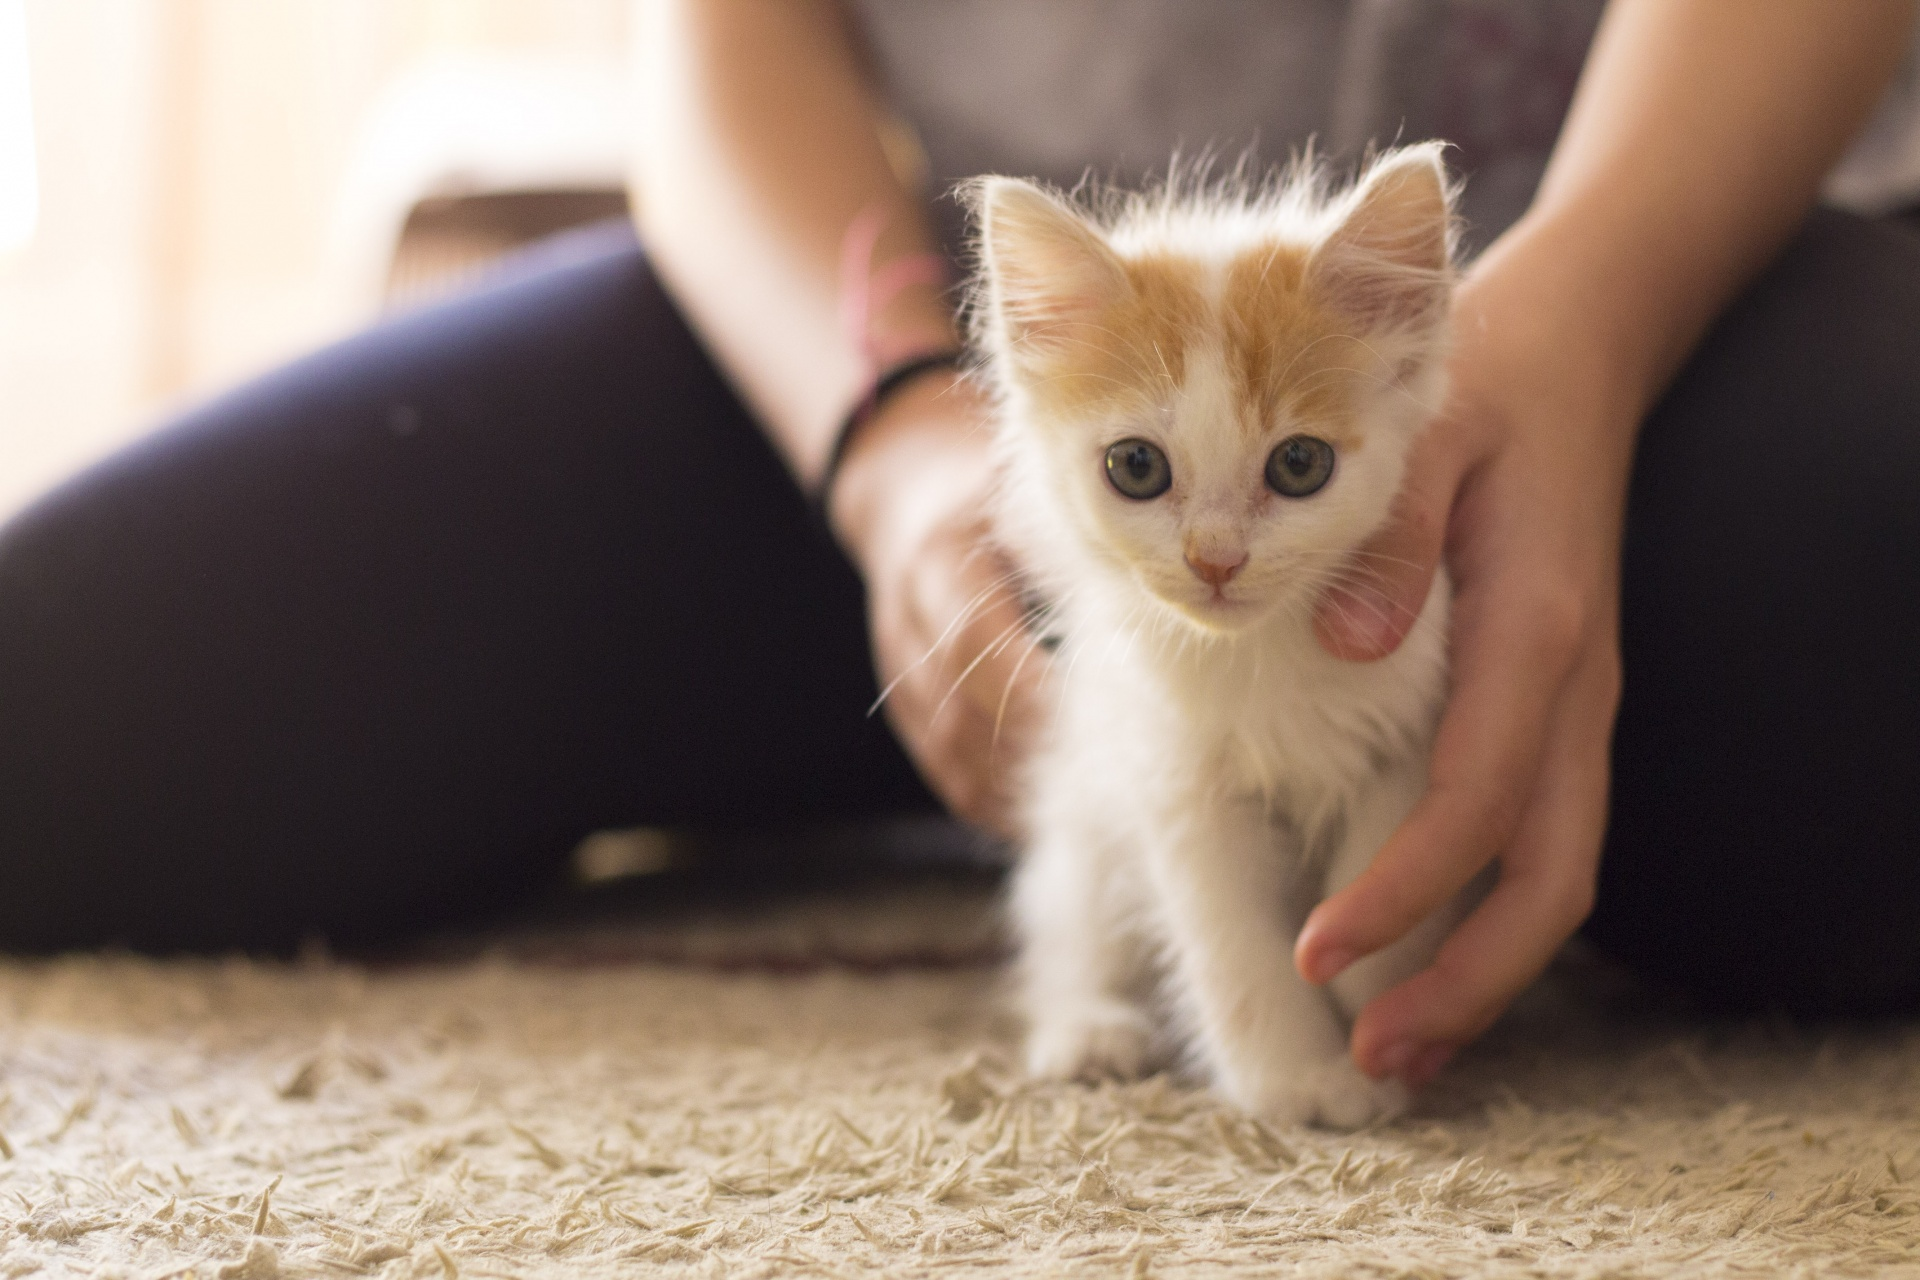 Your daily dose of cute: Kittens up for adoption now in Philly